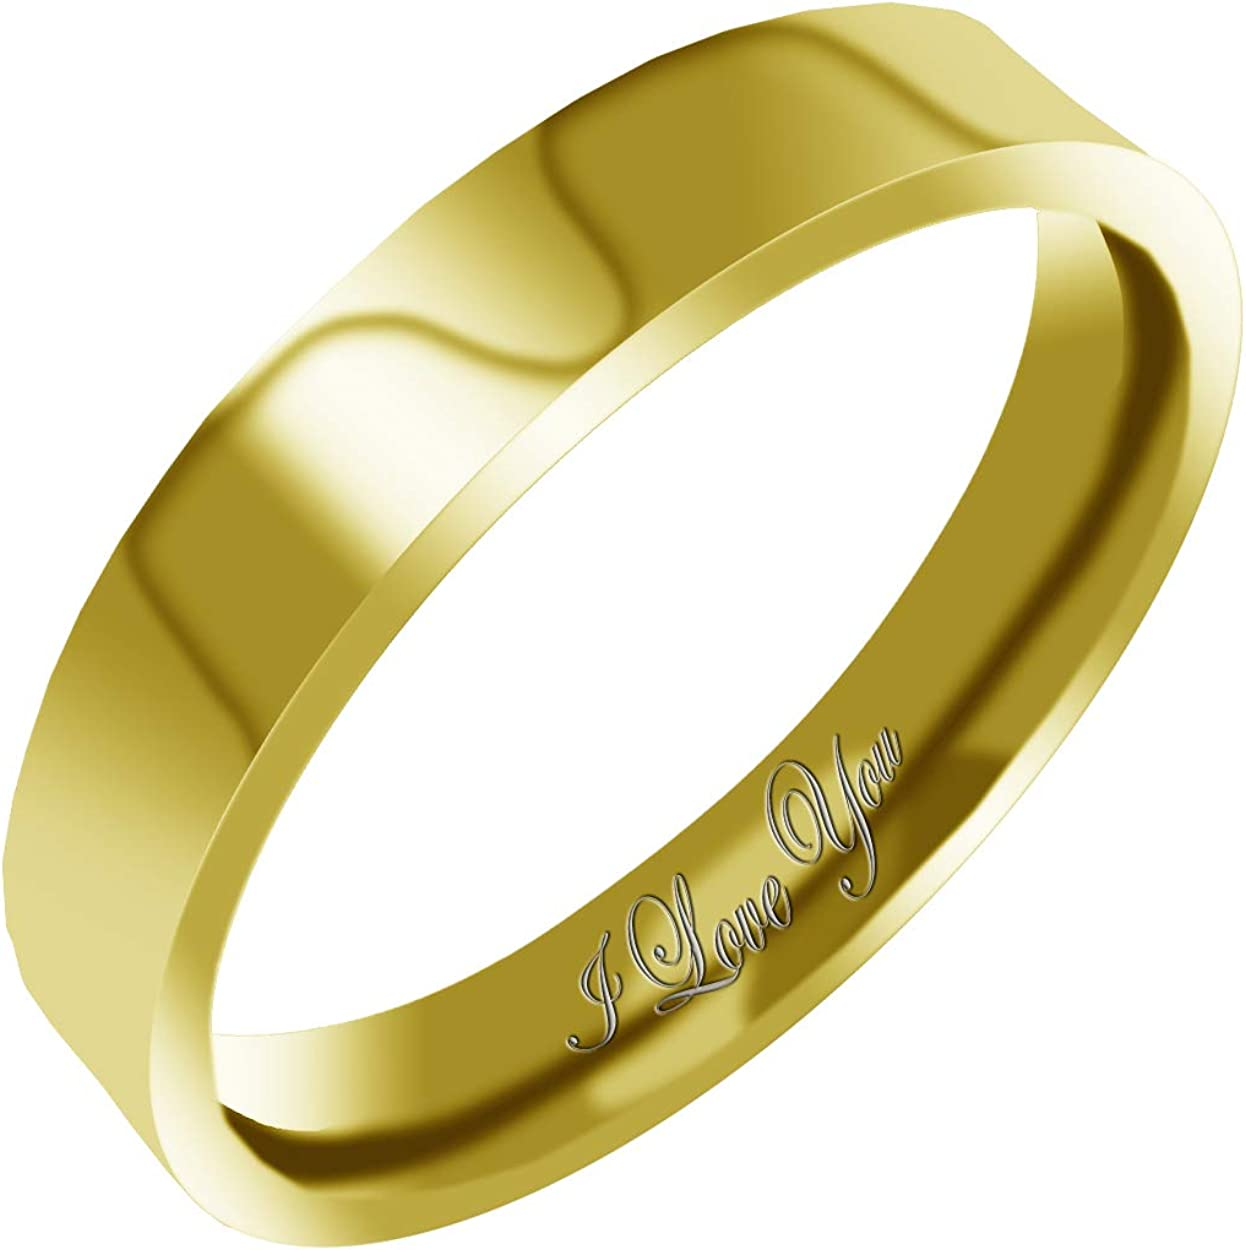 Everstone Women's Shiny Polish 4MM & 6MM Flat Promise Ring Wedding Bands Titanium Ring Color: Yellow Gold Engraved I Love You